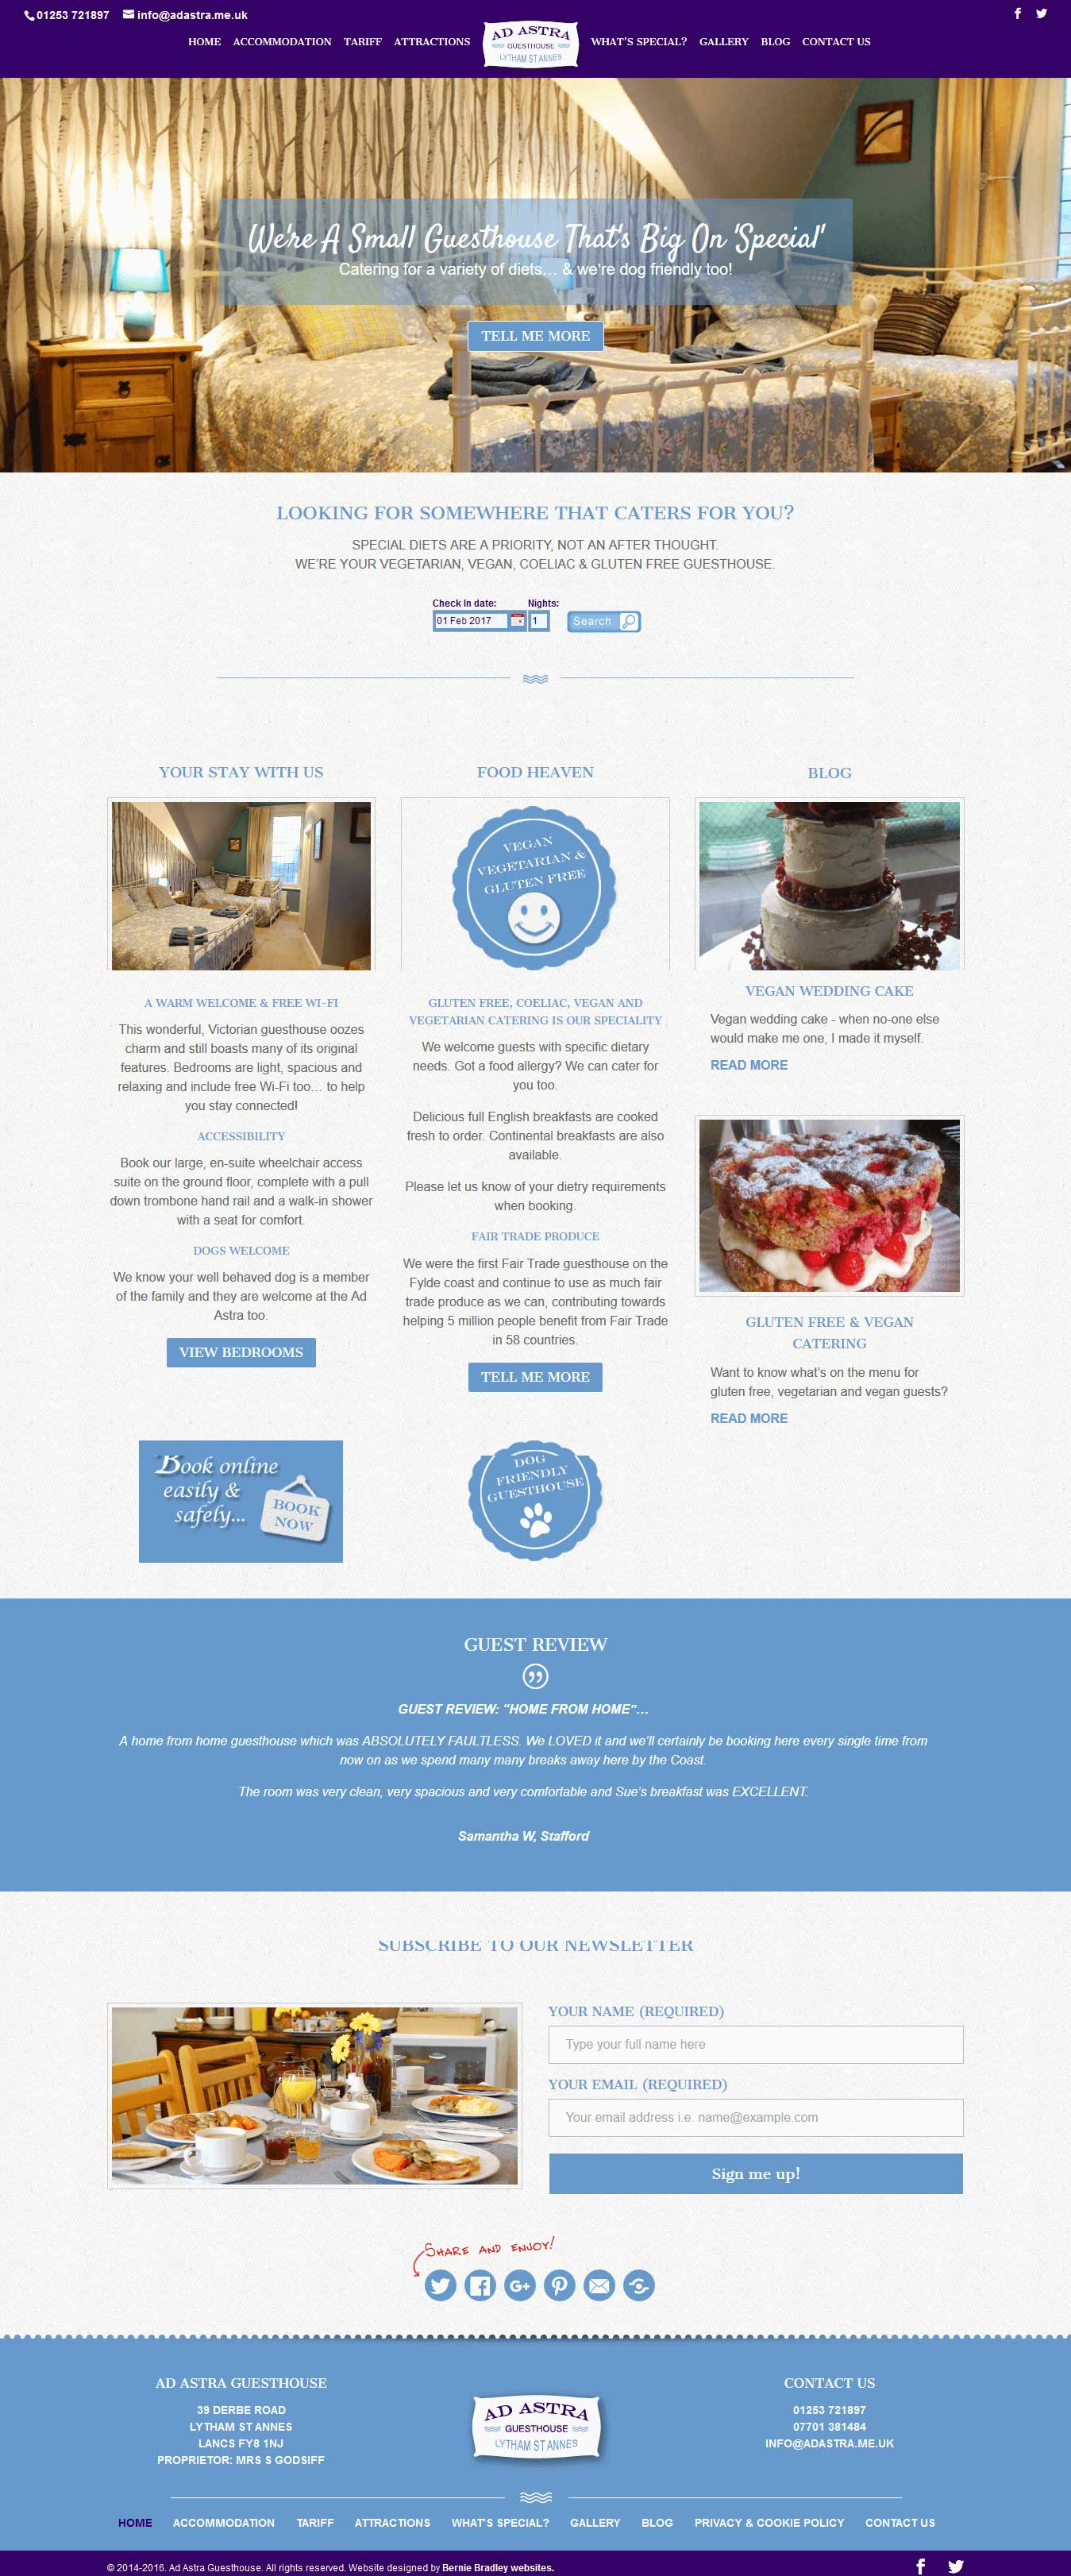 Mobile friendly website design for Ad Astra Guesthouse by Bernie Bradley Websites